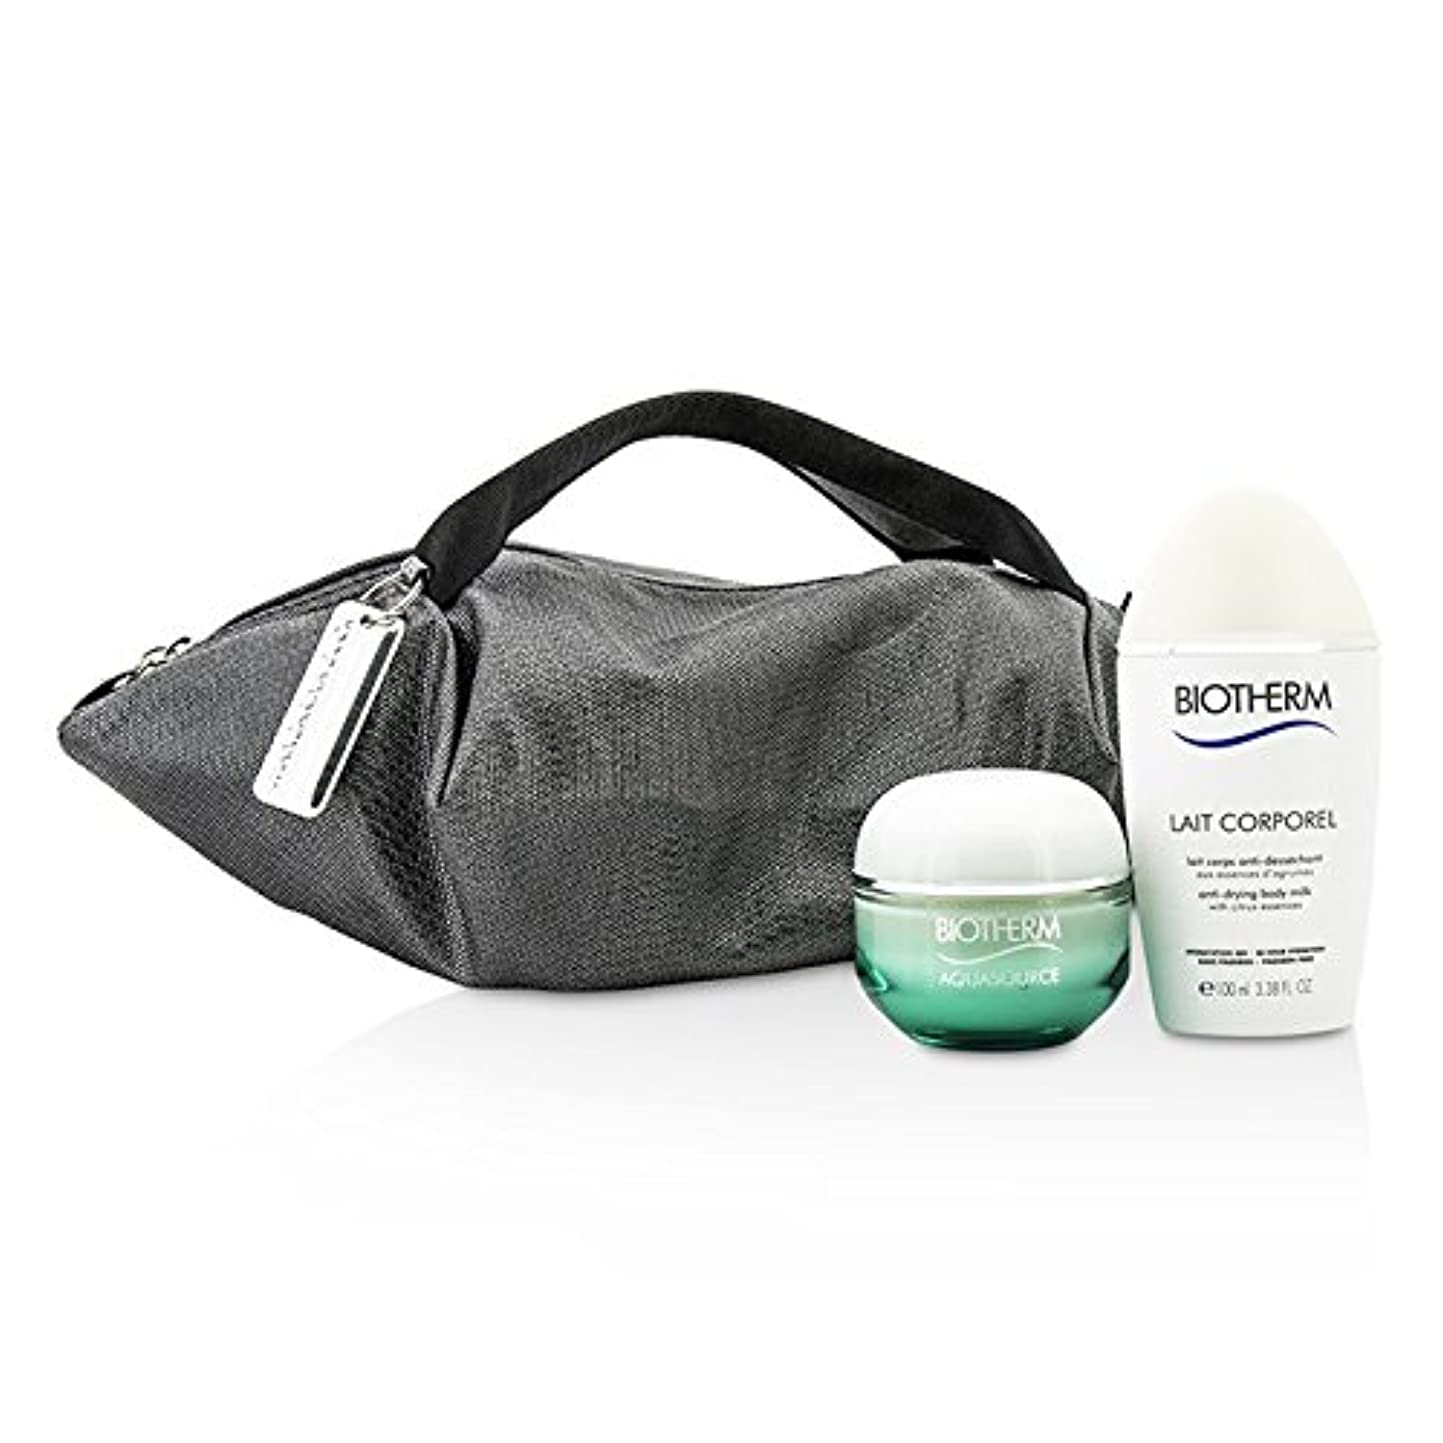 ビオテルム Aquasource & Body Care X Mandarina Duck Coffret: Cream N/C 50ml + Anti-Drying Body Care 100ml + Handle Bag...